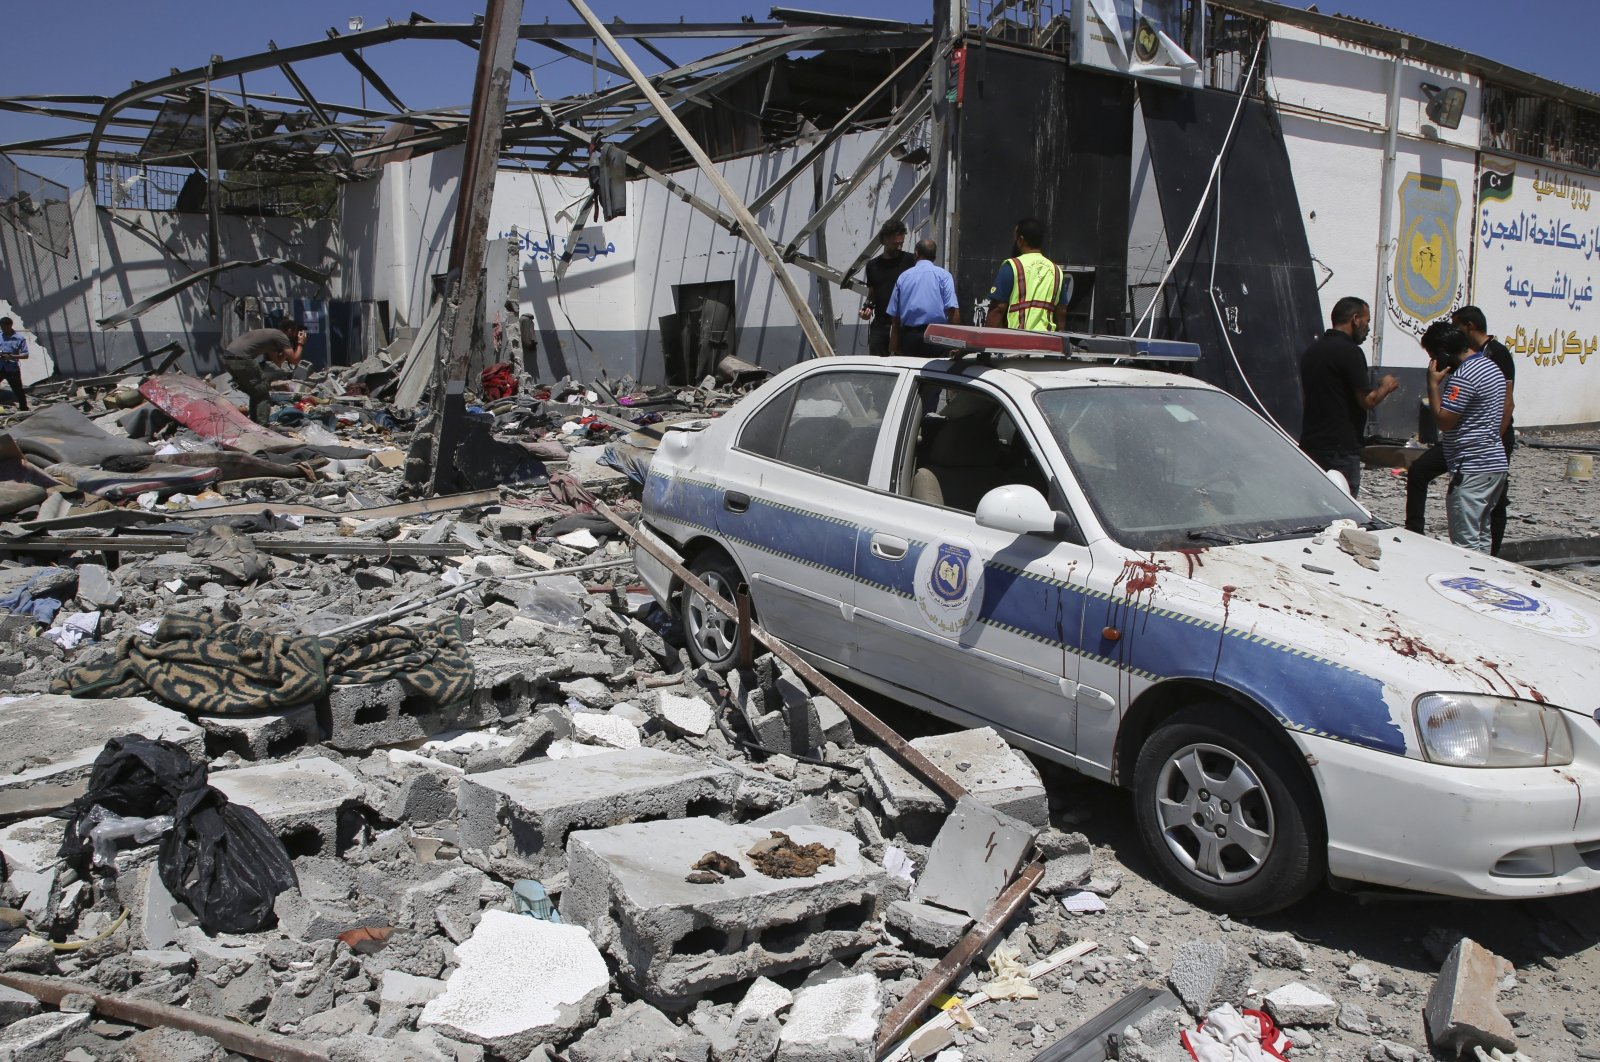 Debris covers the ground and an emergency vehicle after an airstrike at a detention center in Tajoura, east of Tripoli in Libya, July 3, 2019.  (AP)